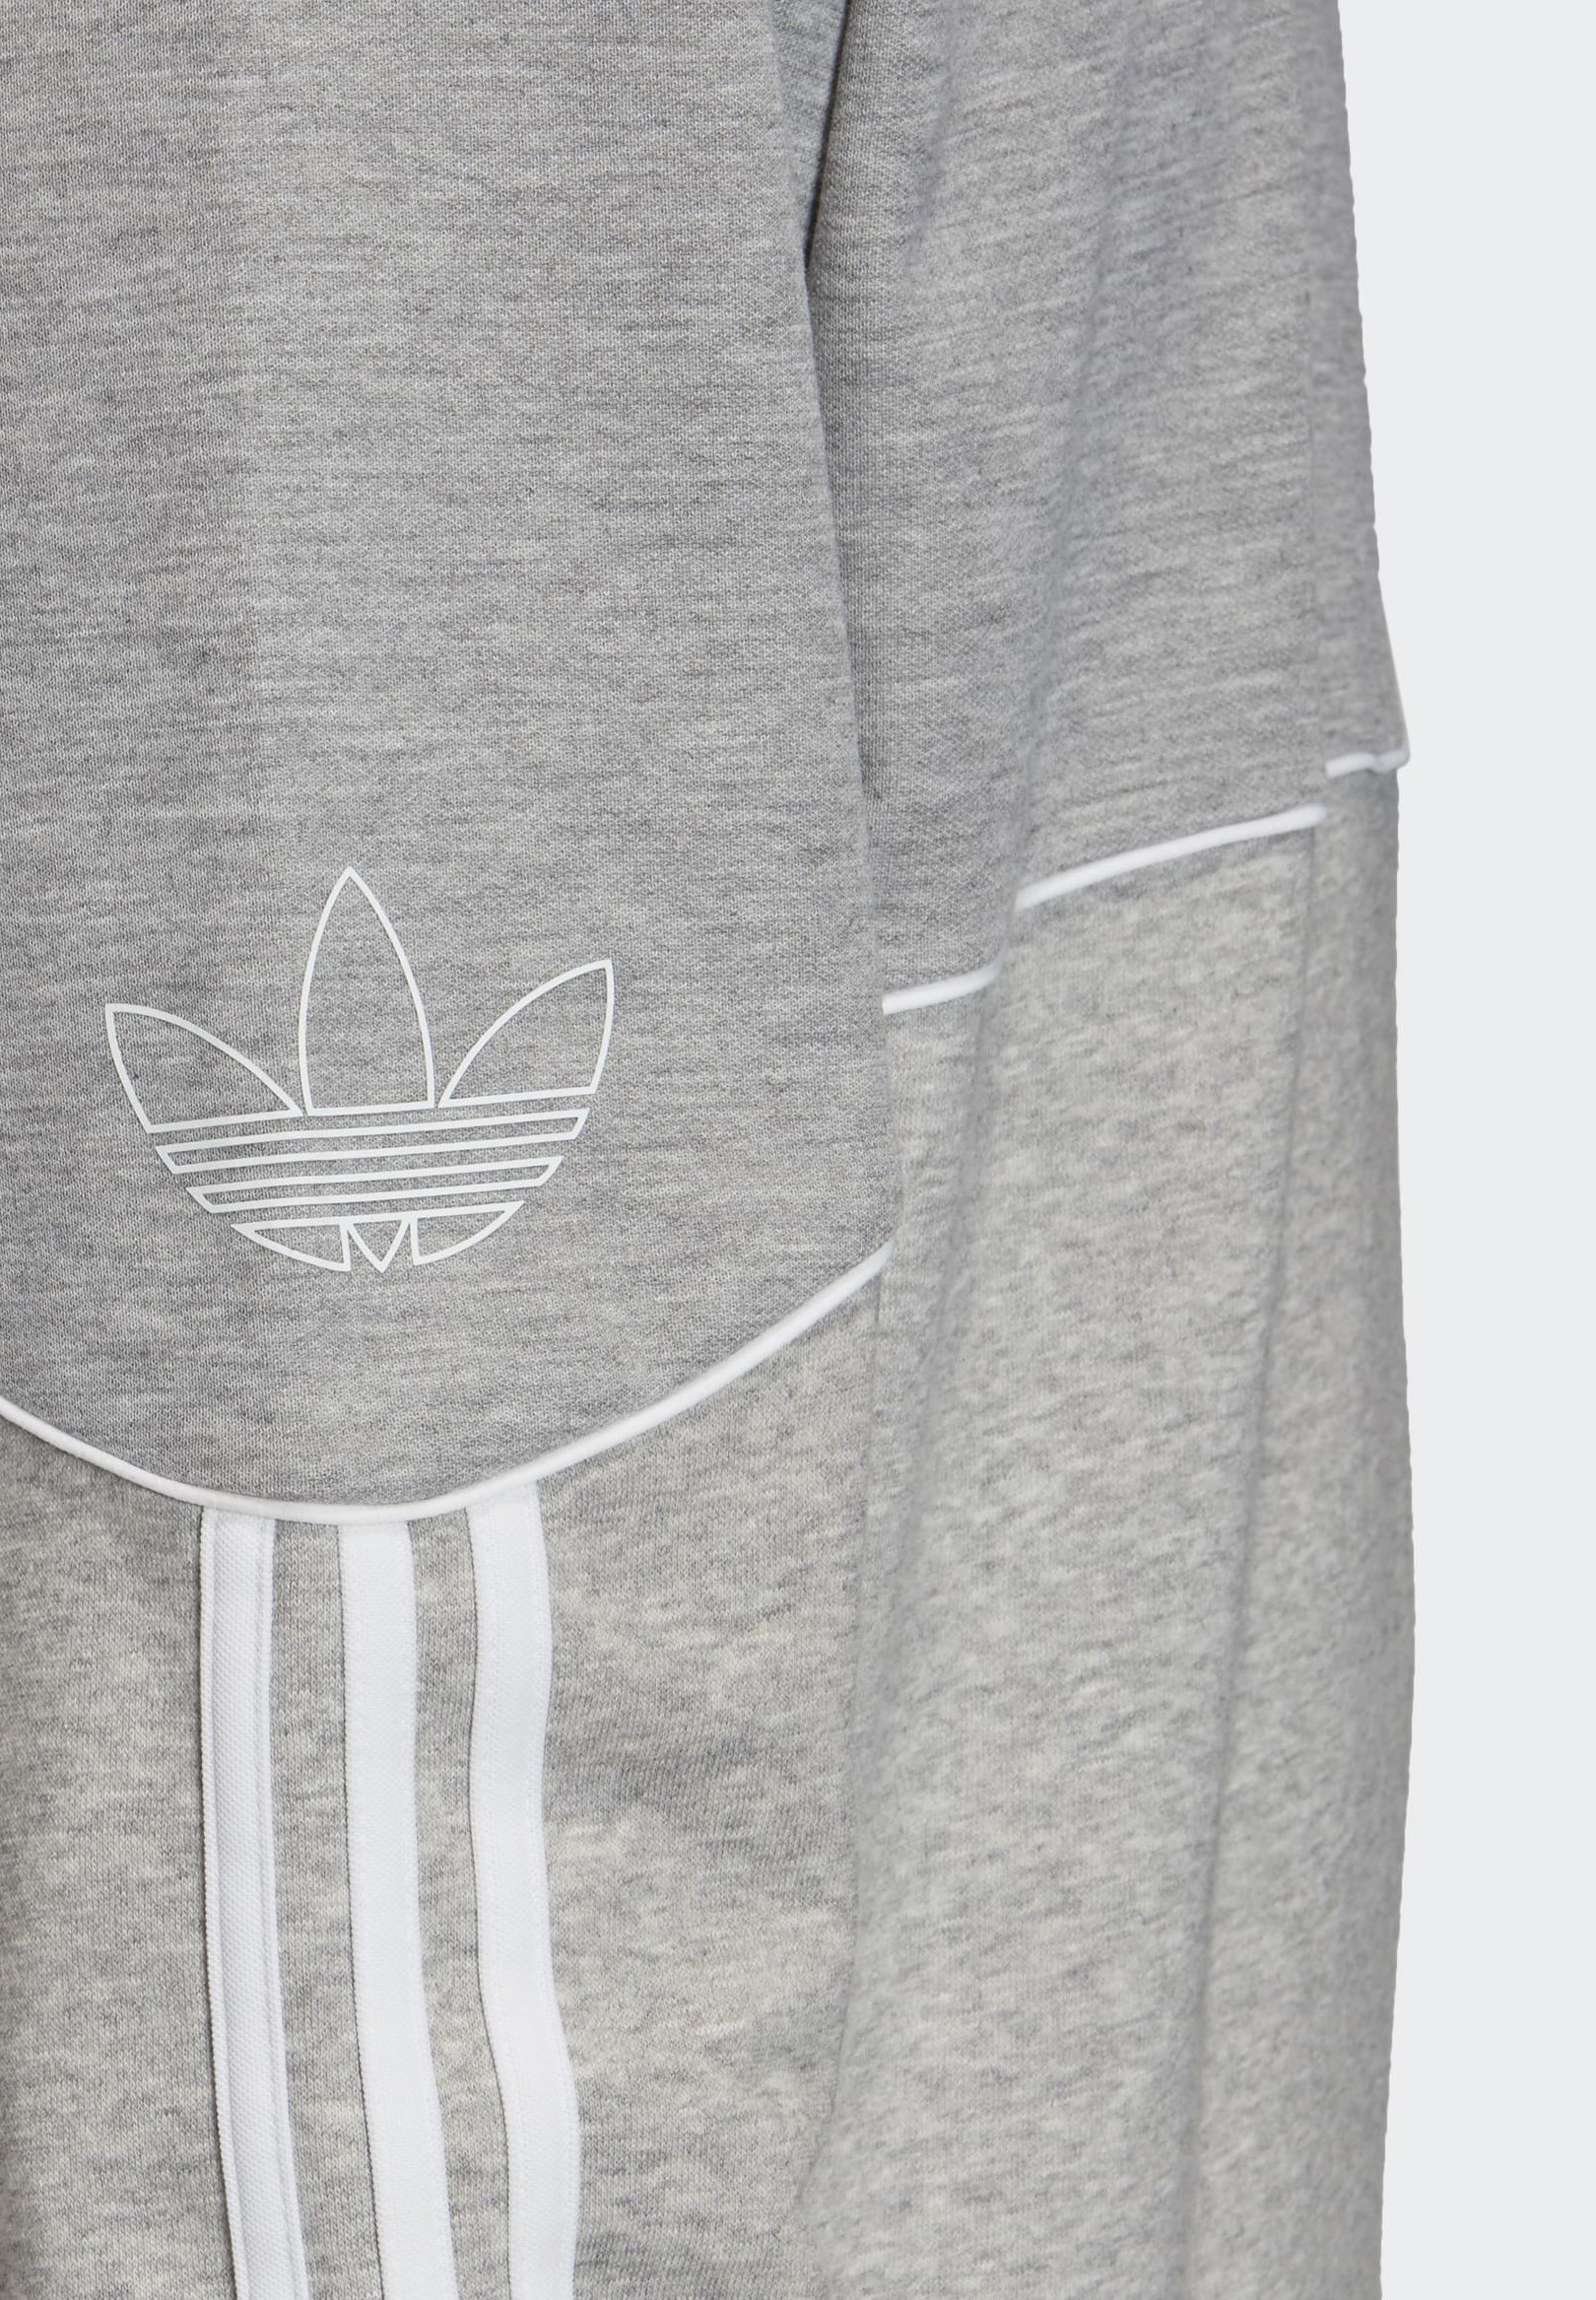 Adidas Originals Outline Crewneck Sweatshirt - Grey/grå